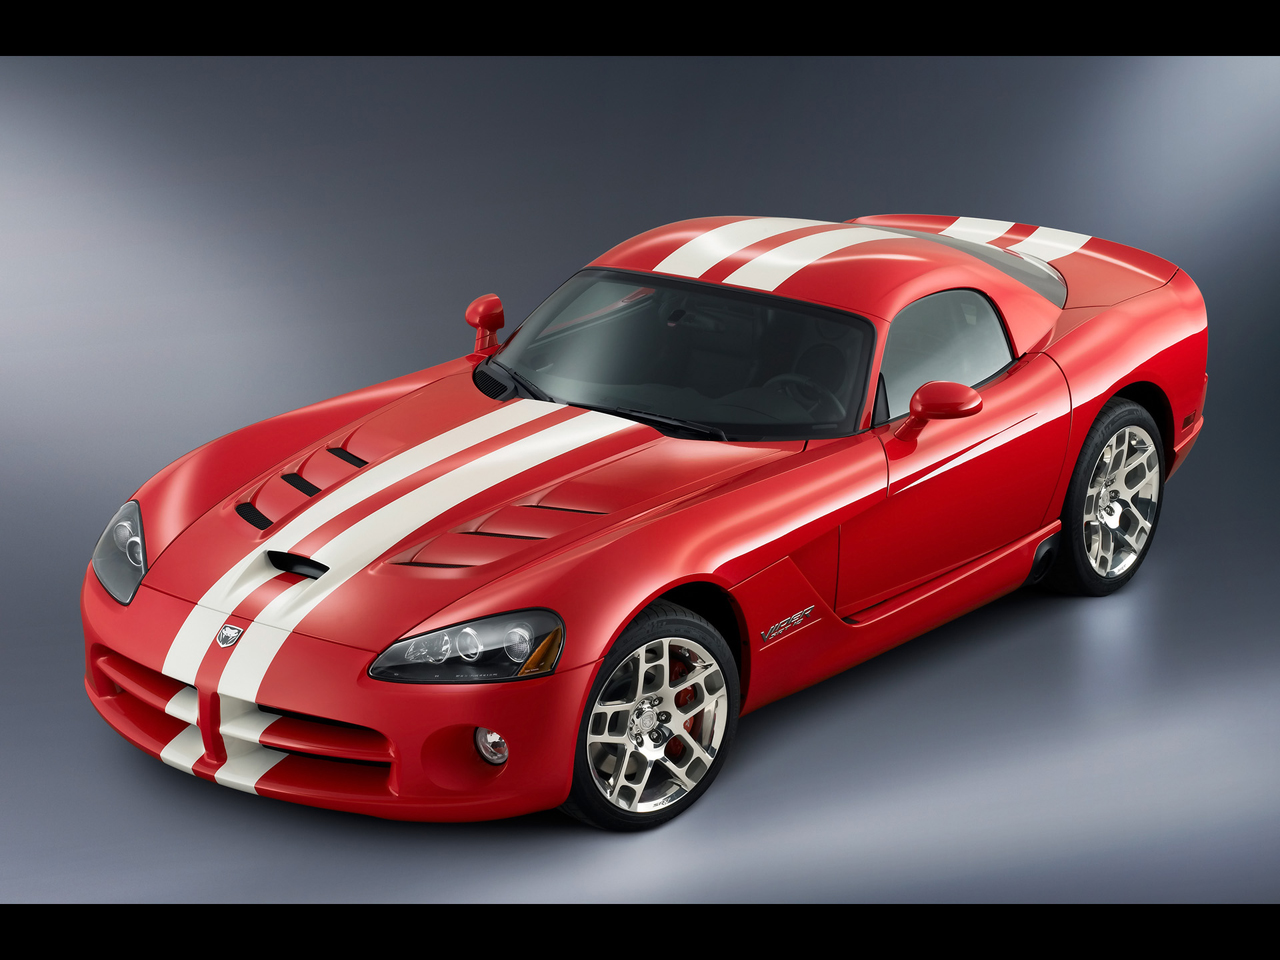 2009 Dodge Viper SRT10 photos